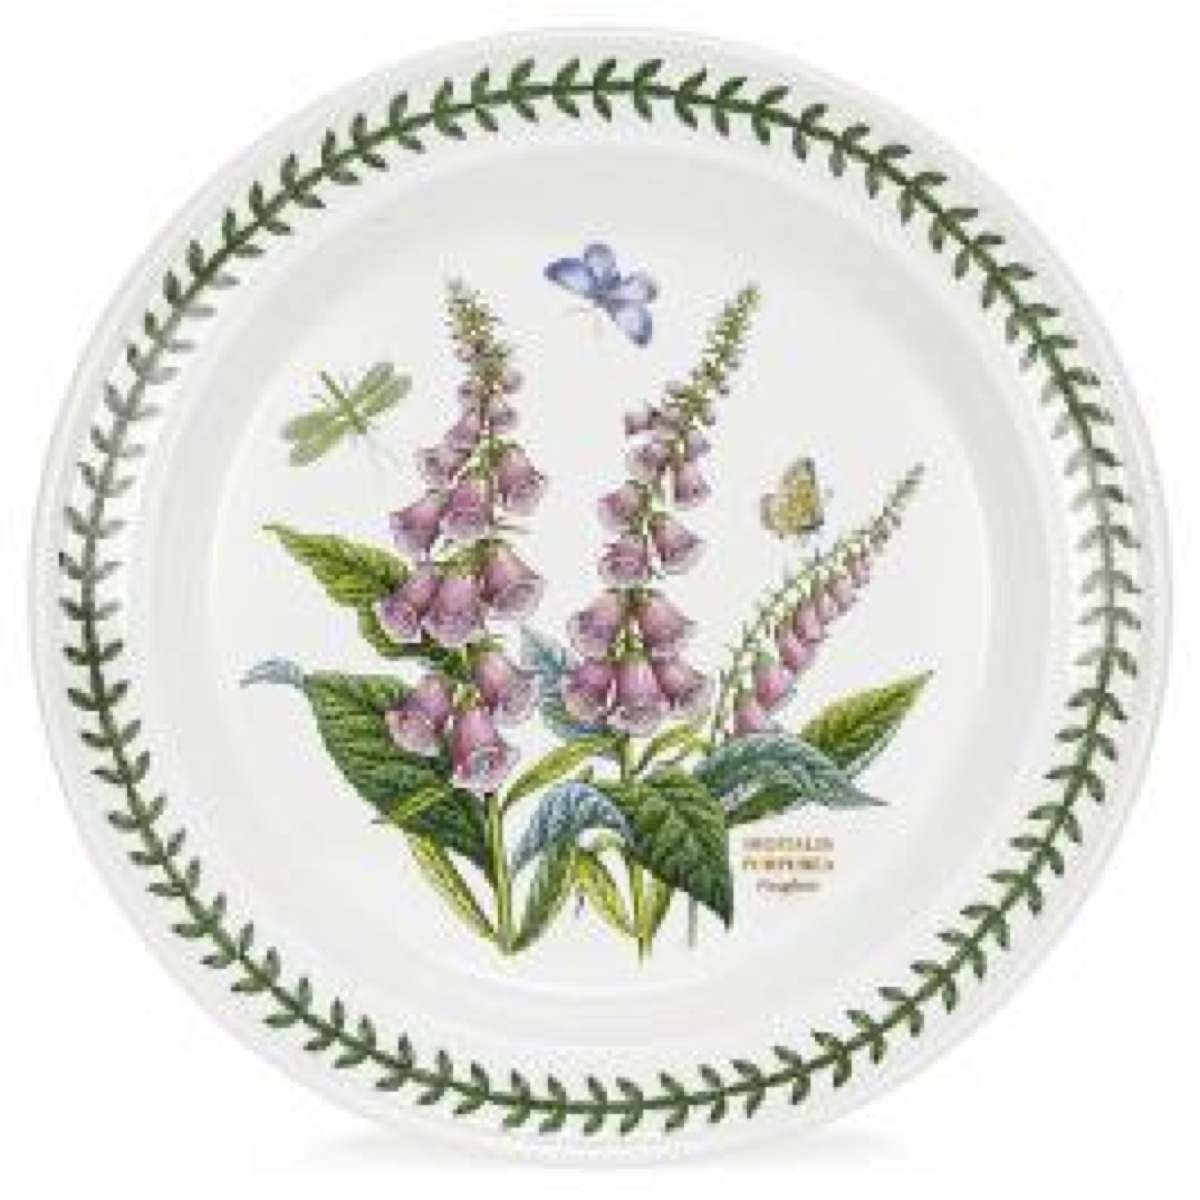 Party Dishes a passion or illness?  sc 1 st  Garden Home u0026 Party & Dinnerware | Garden Home u0026 Party